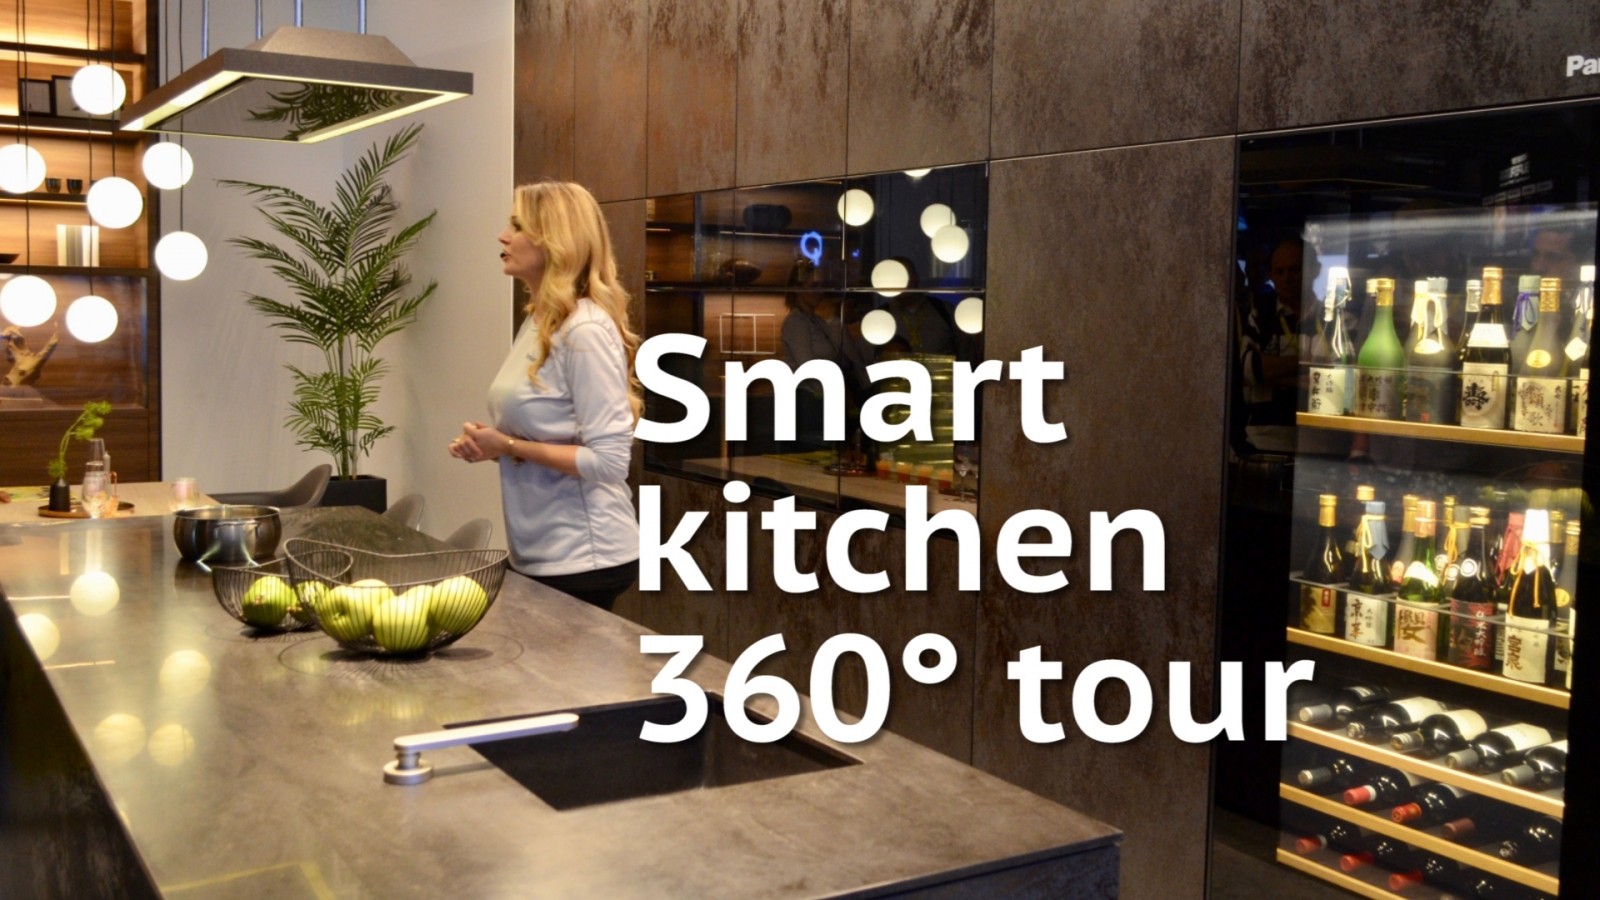 Smart Kitchen Ces 2017 Panasonic Smart Kitchen Wows With Smart Wine Cellar And More